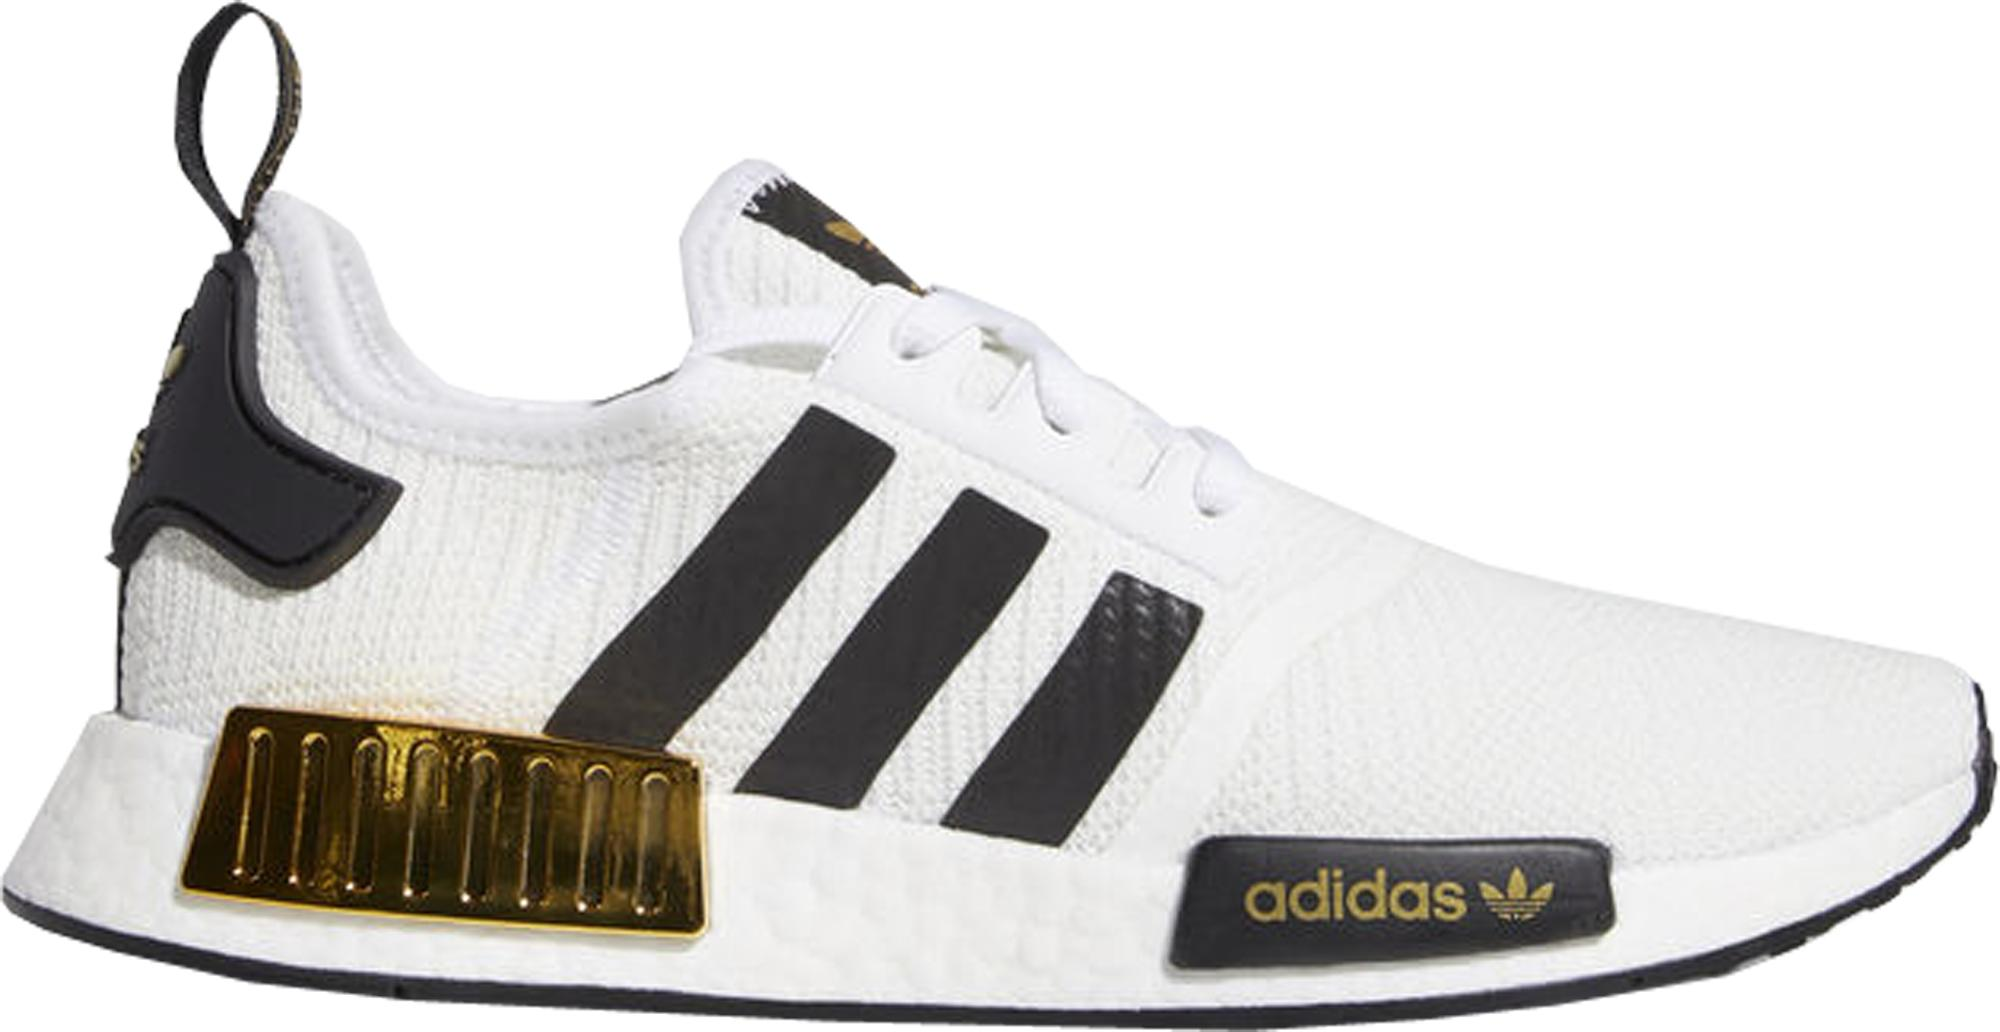 Adidas Nmd R1 White Black Gold For Men Lyst